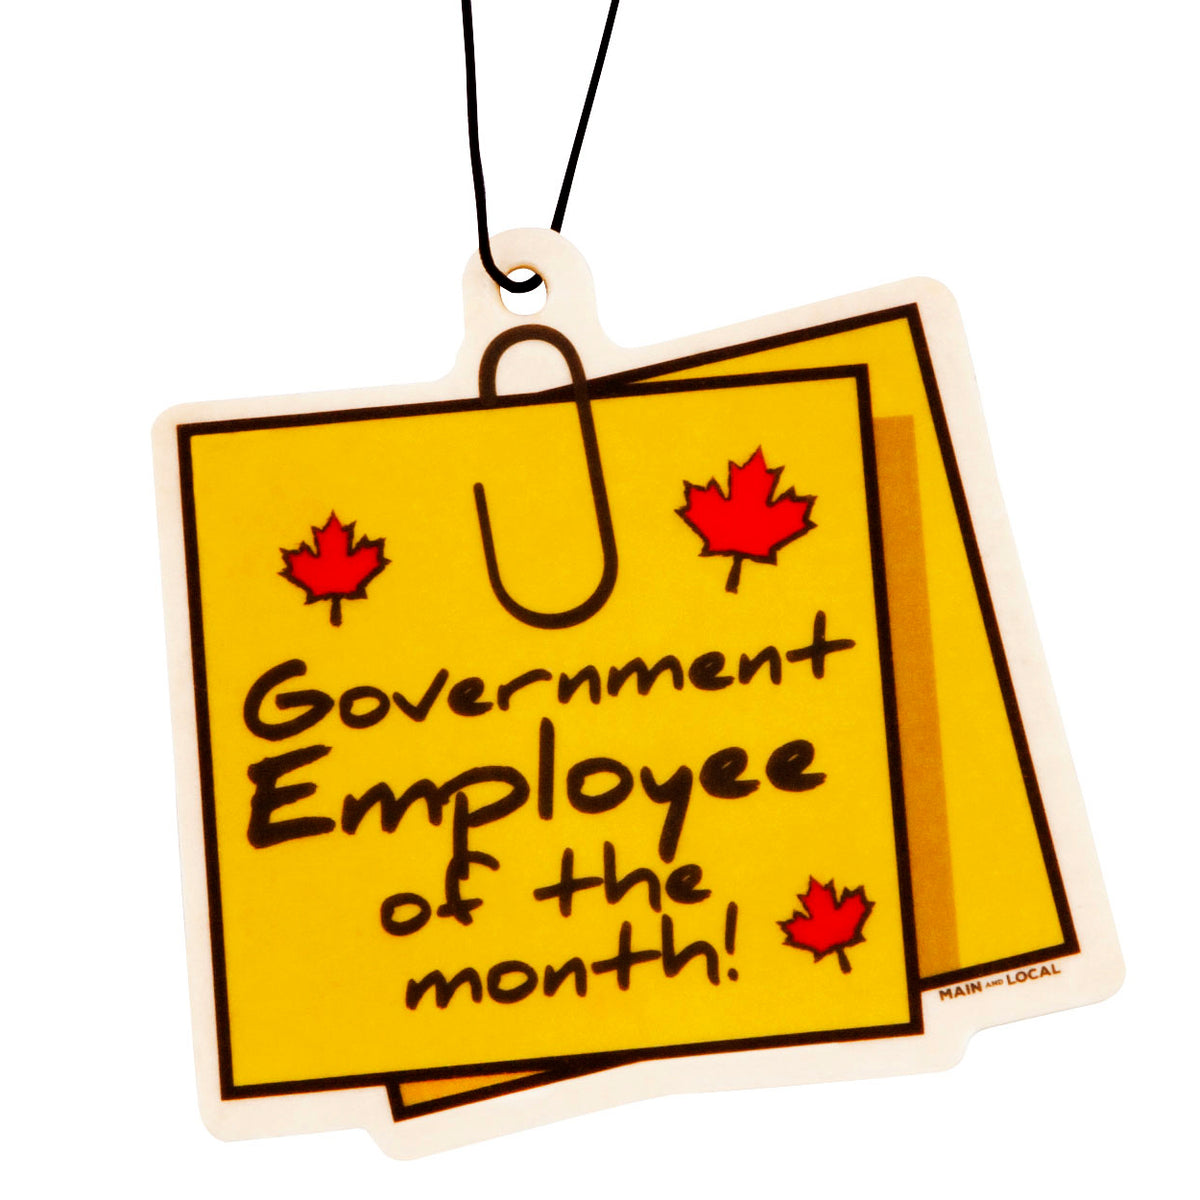 Gov't Employee of The Month Air Freshener